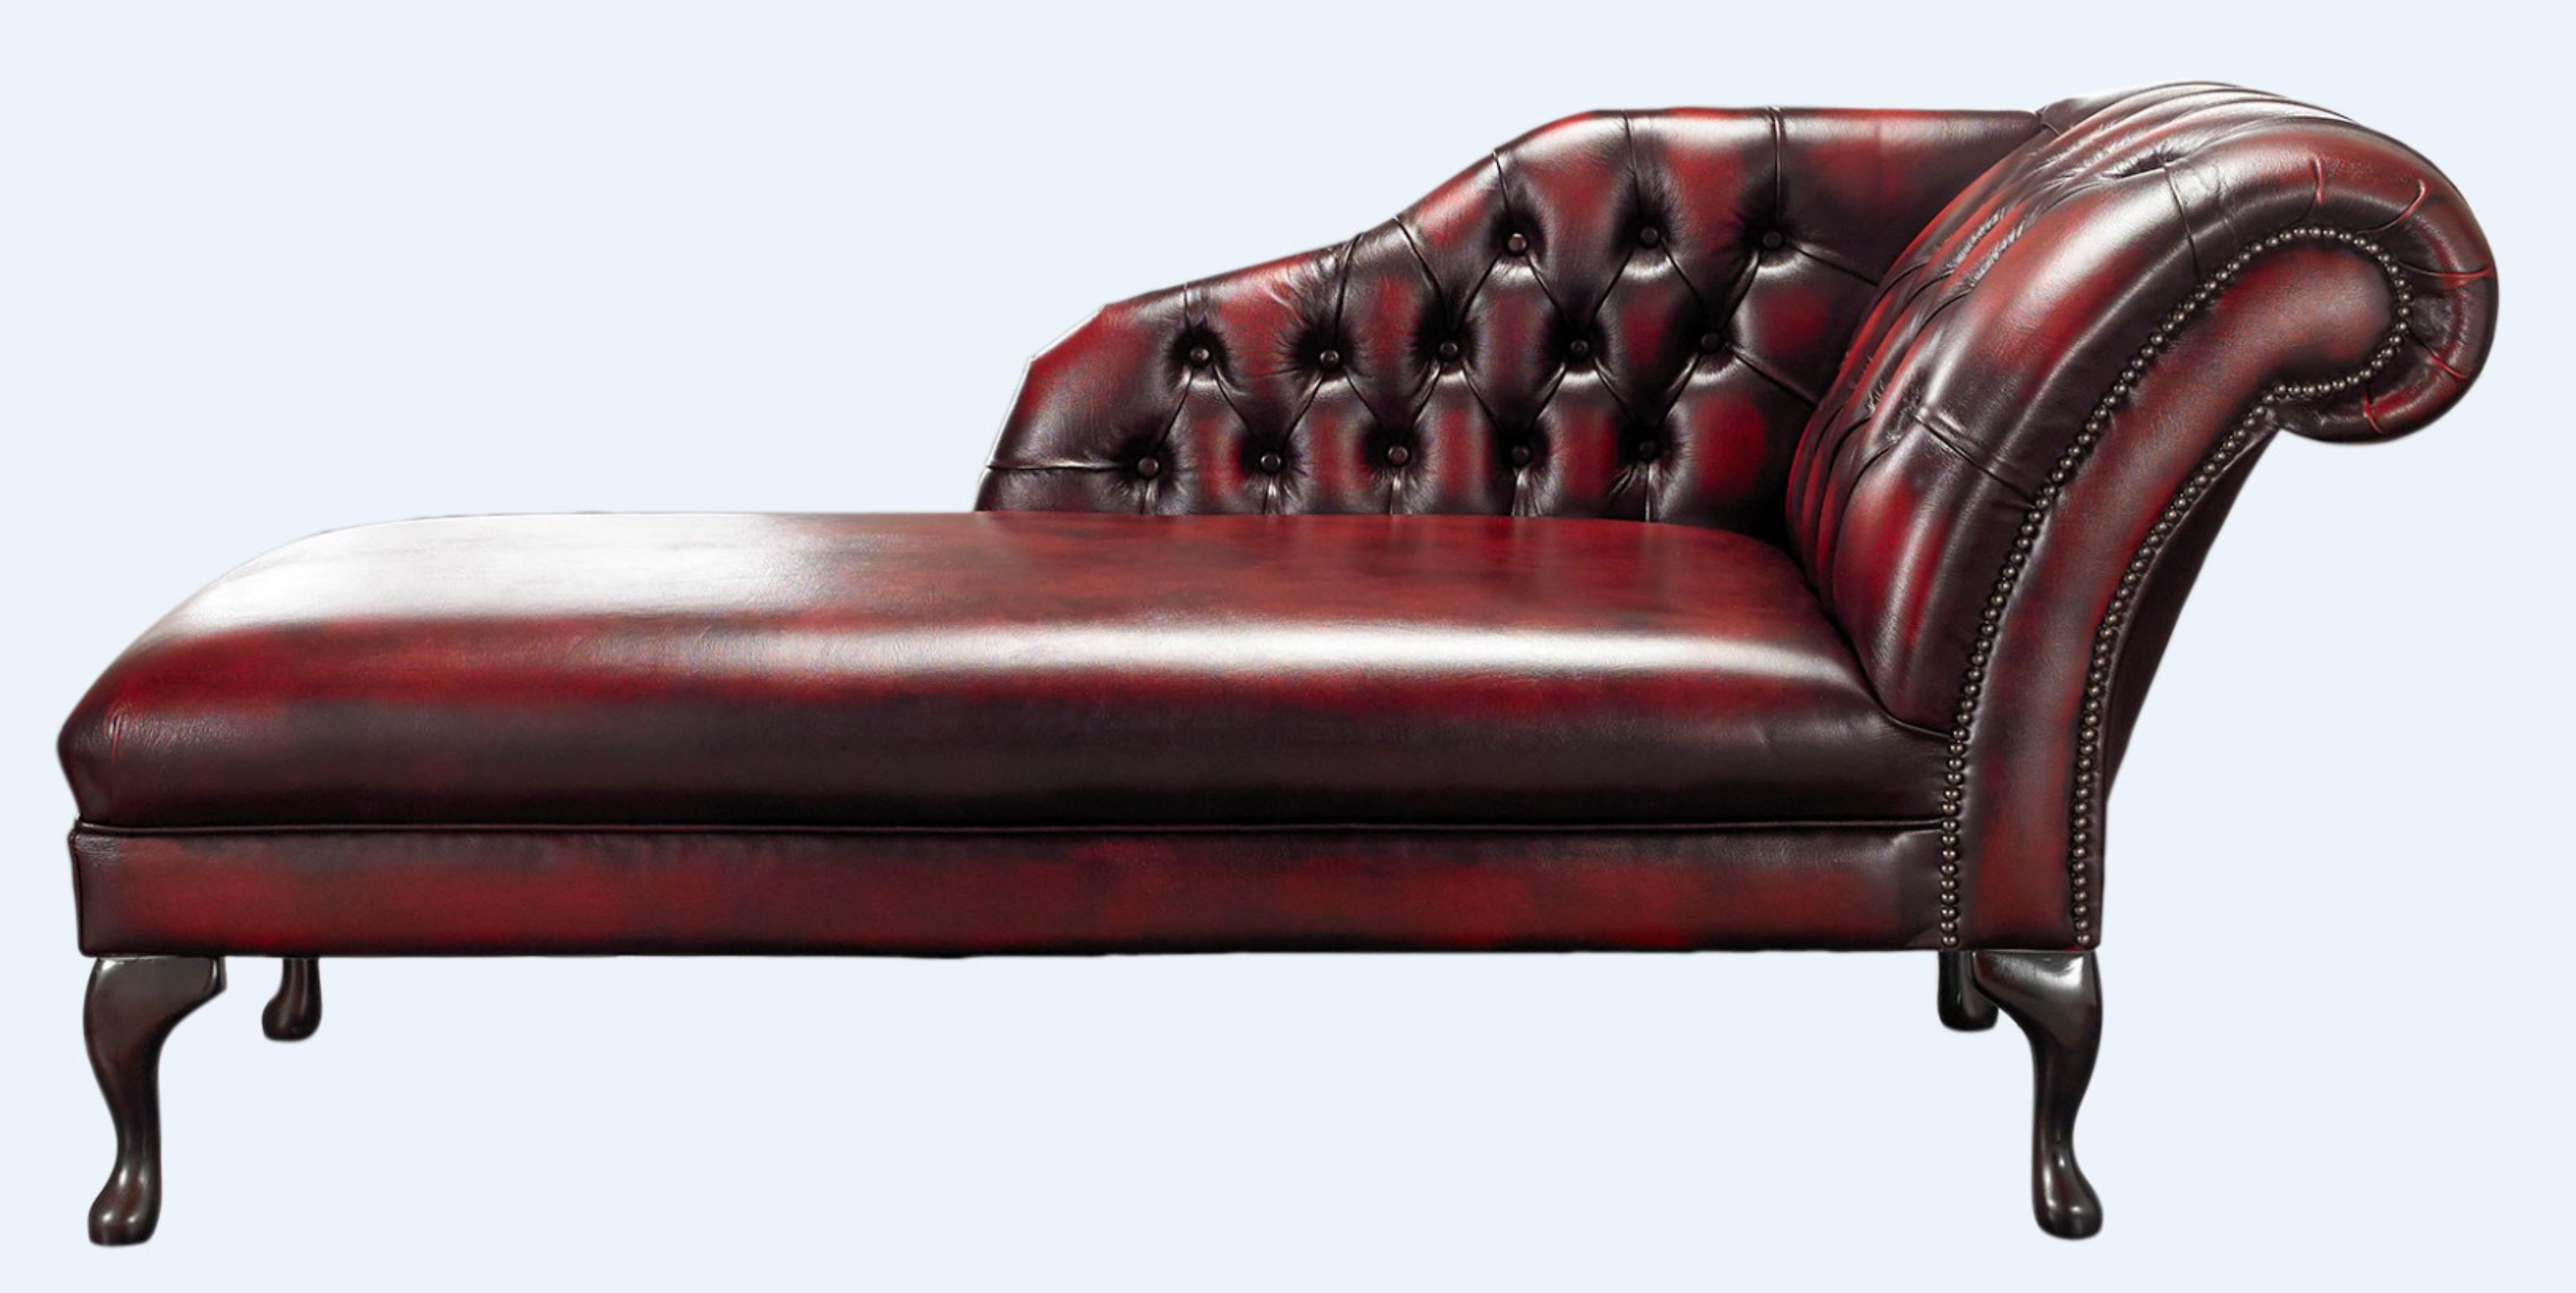 Oxblood Chesterfield Chaise Lounge Day Bed Accent Furniture Designersofas4u